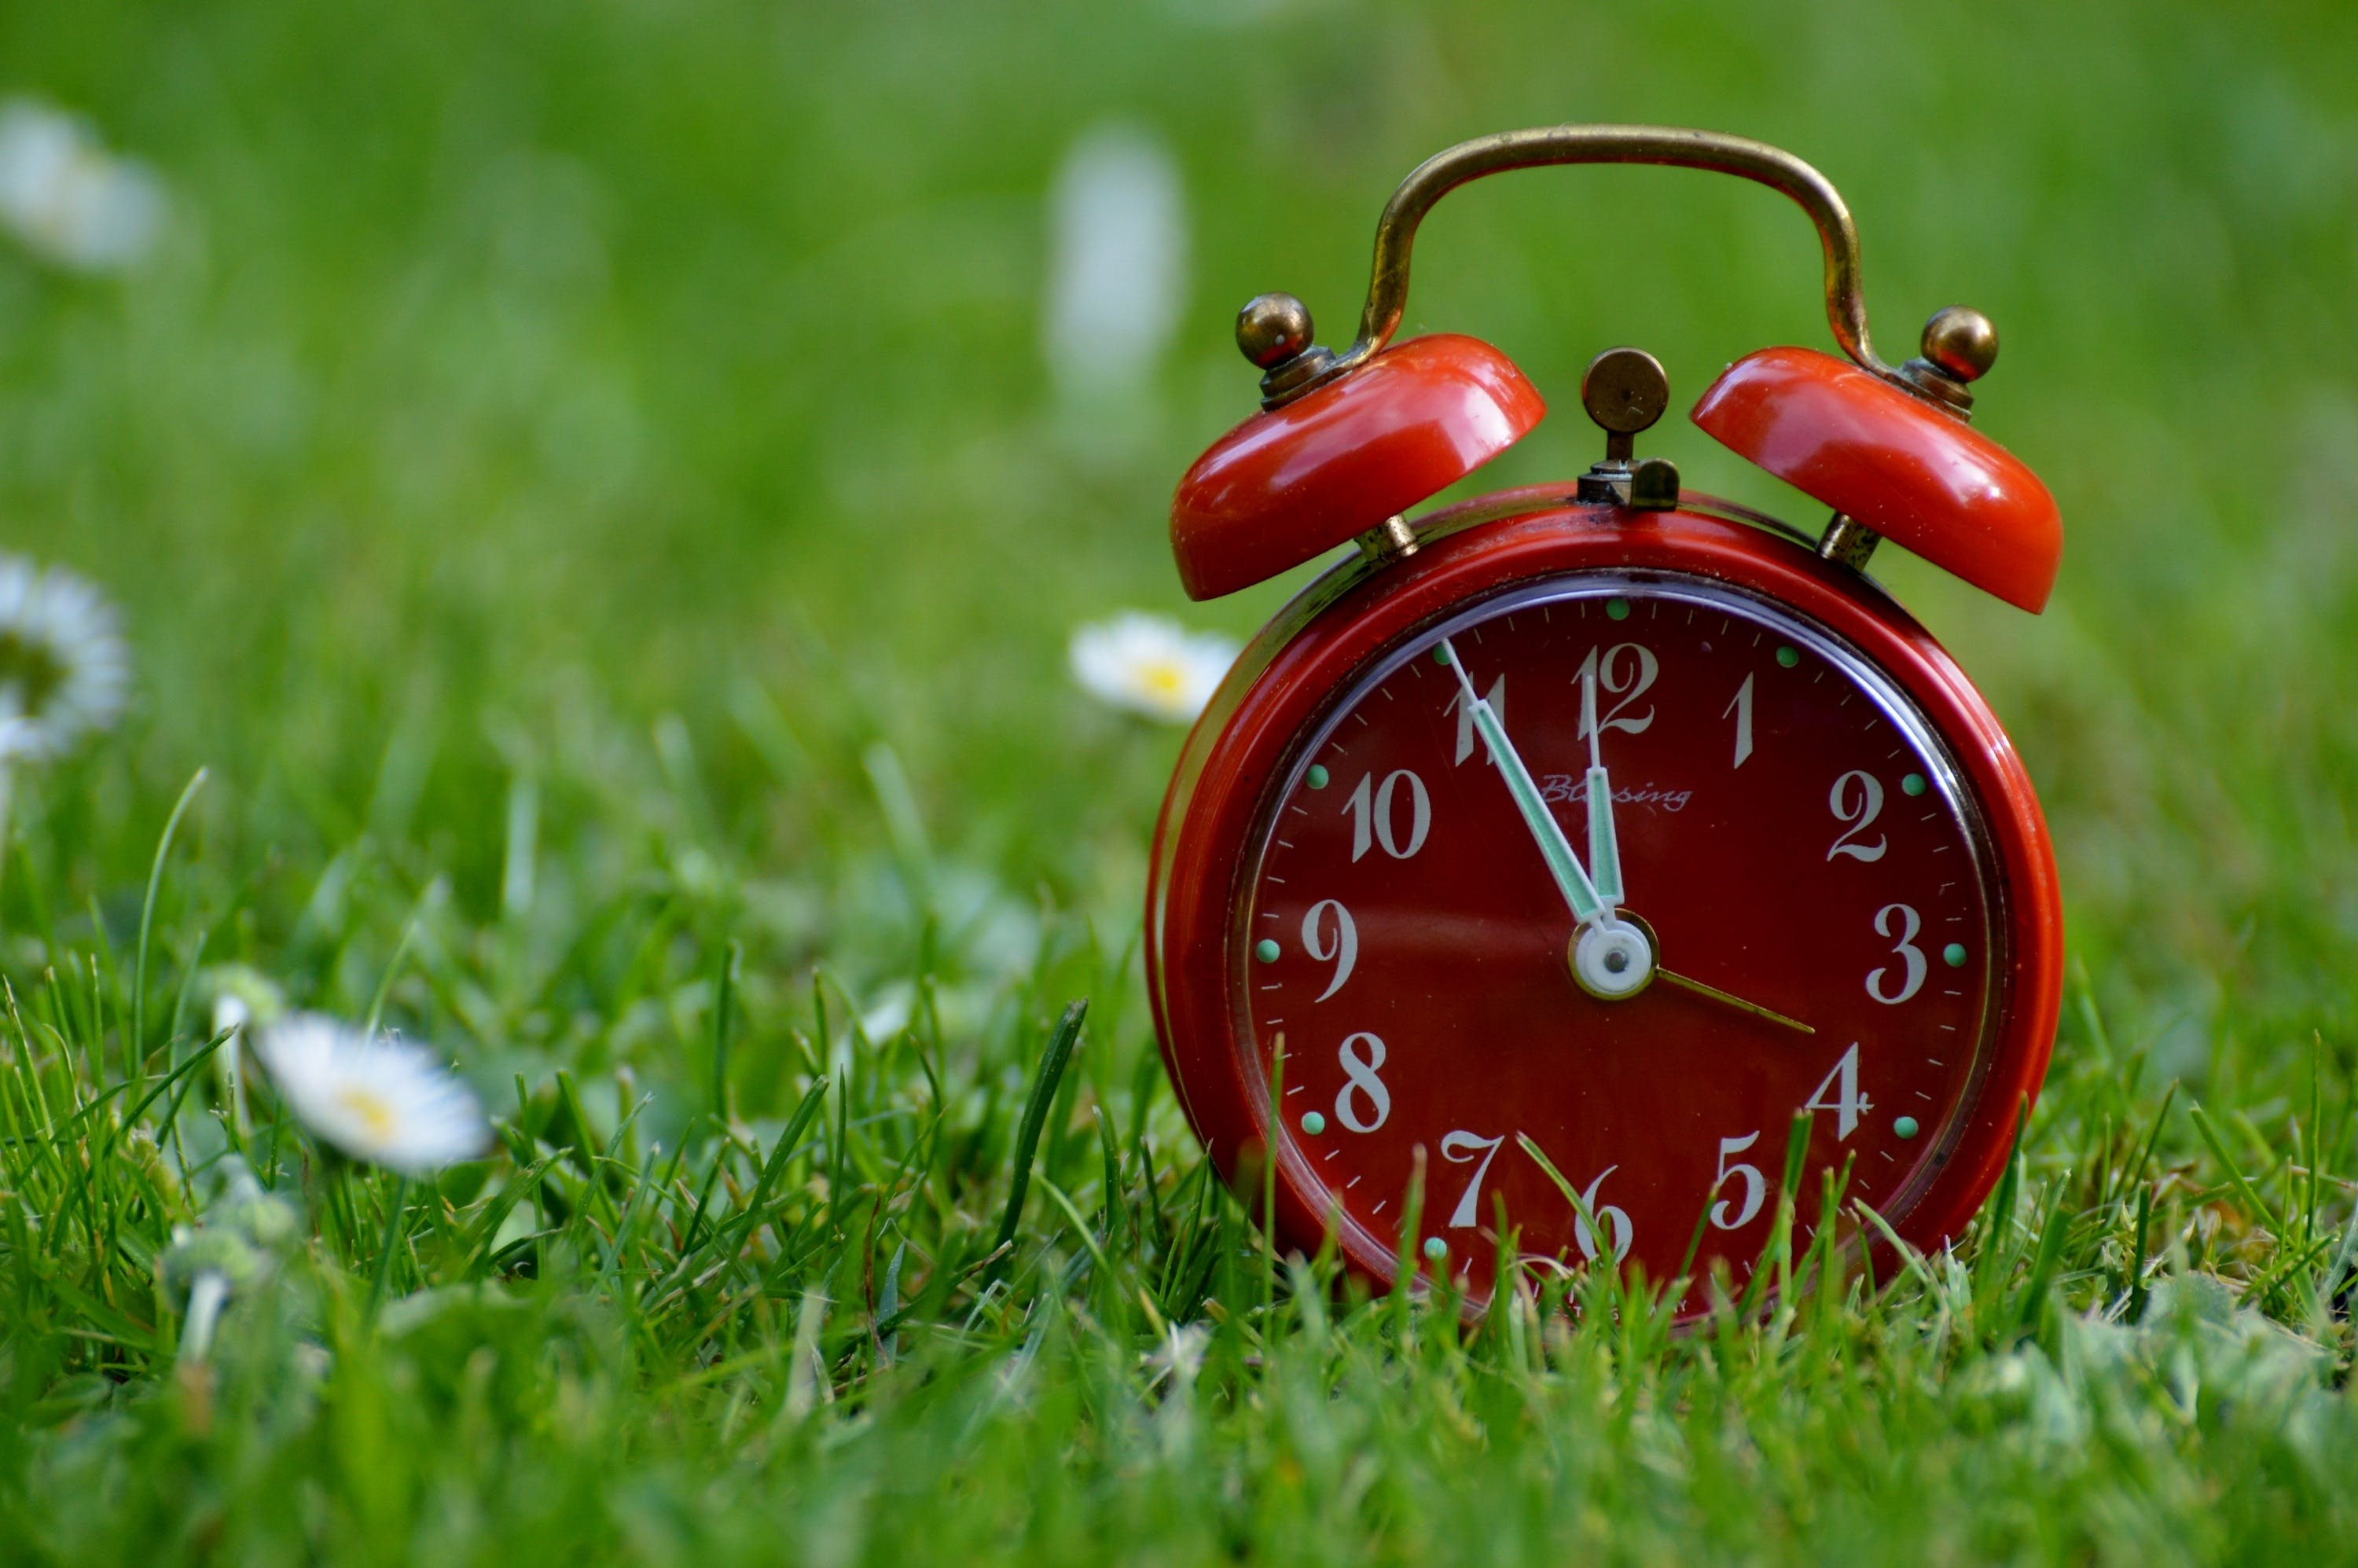 Red 2-bell Alarm Clock on Grass Field